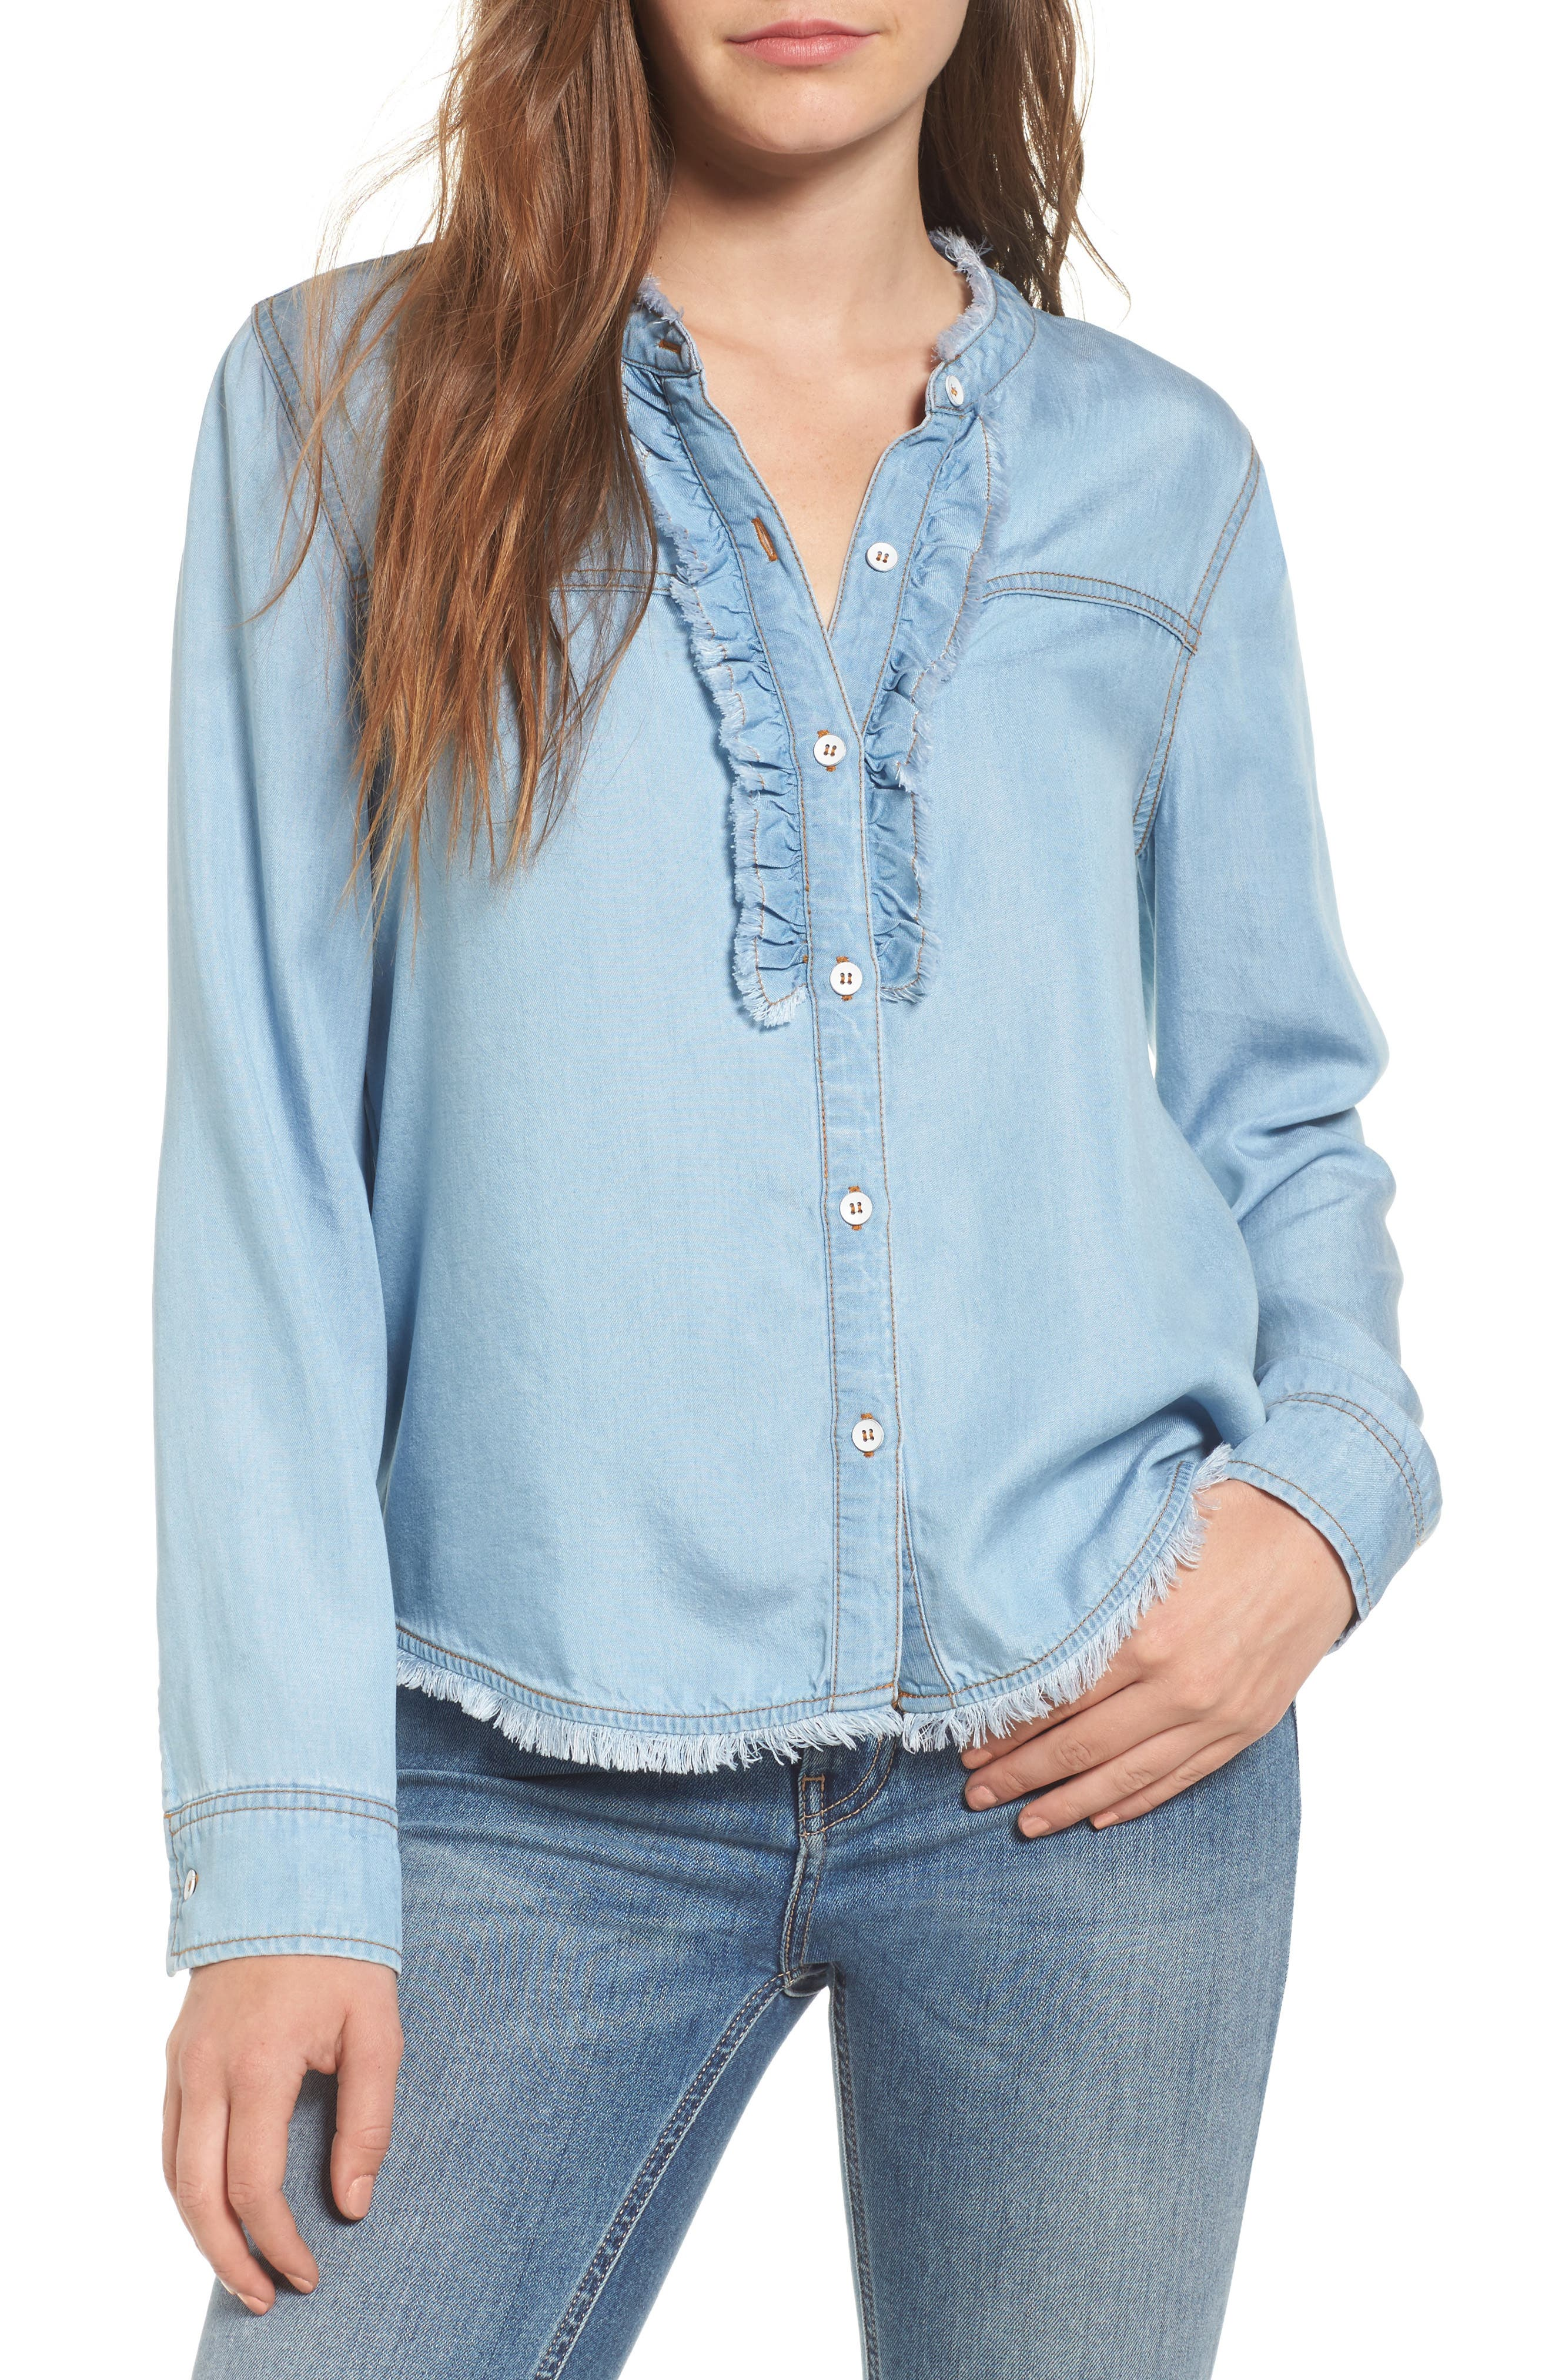 Splendid Ruffle Chambray Shirt